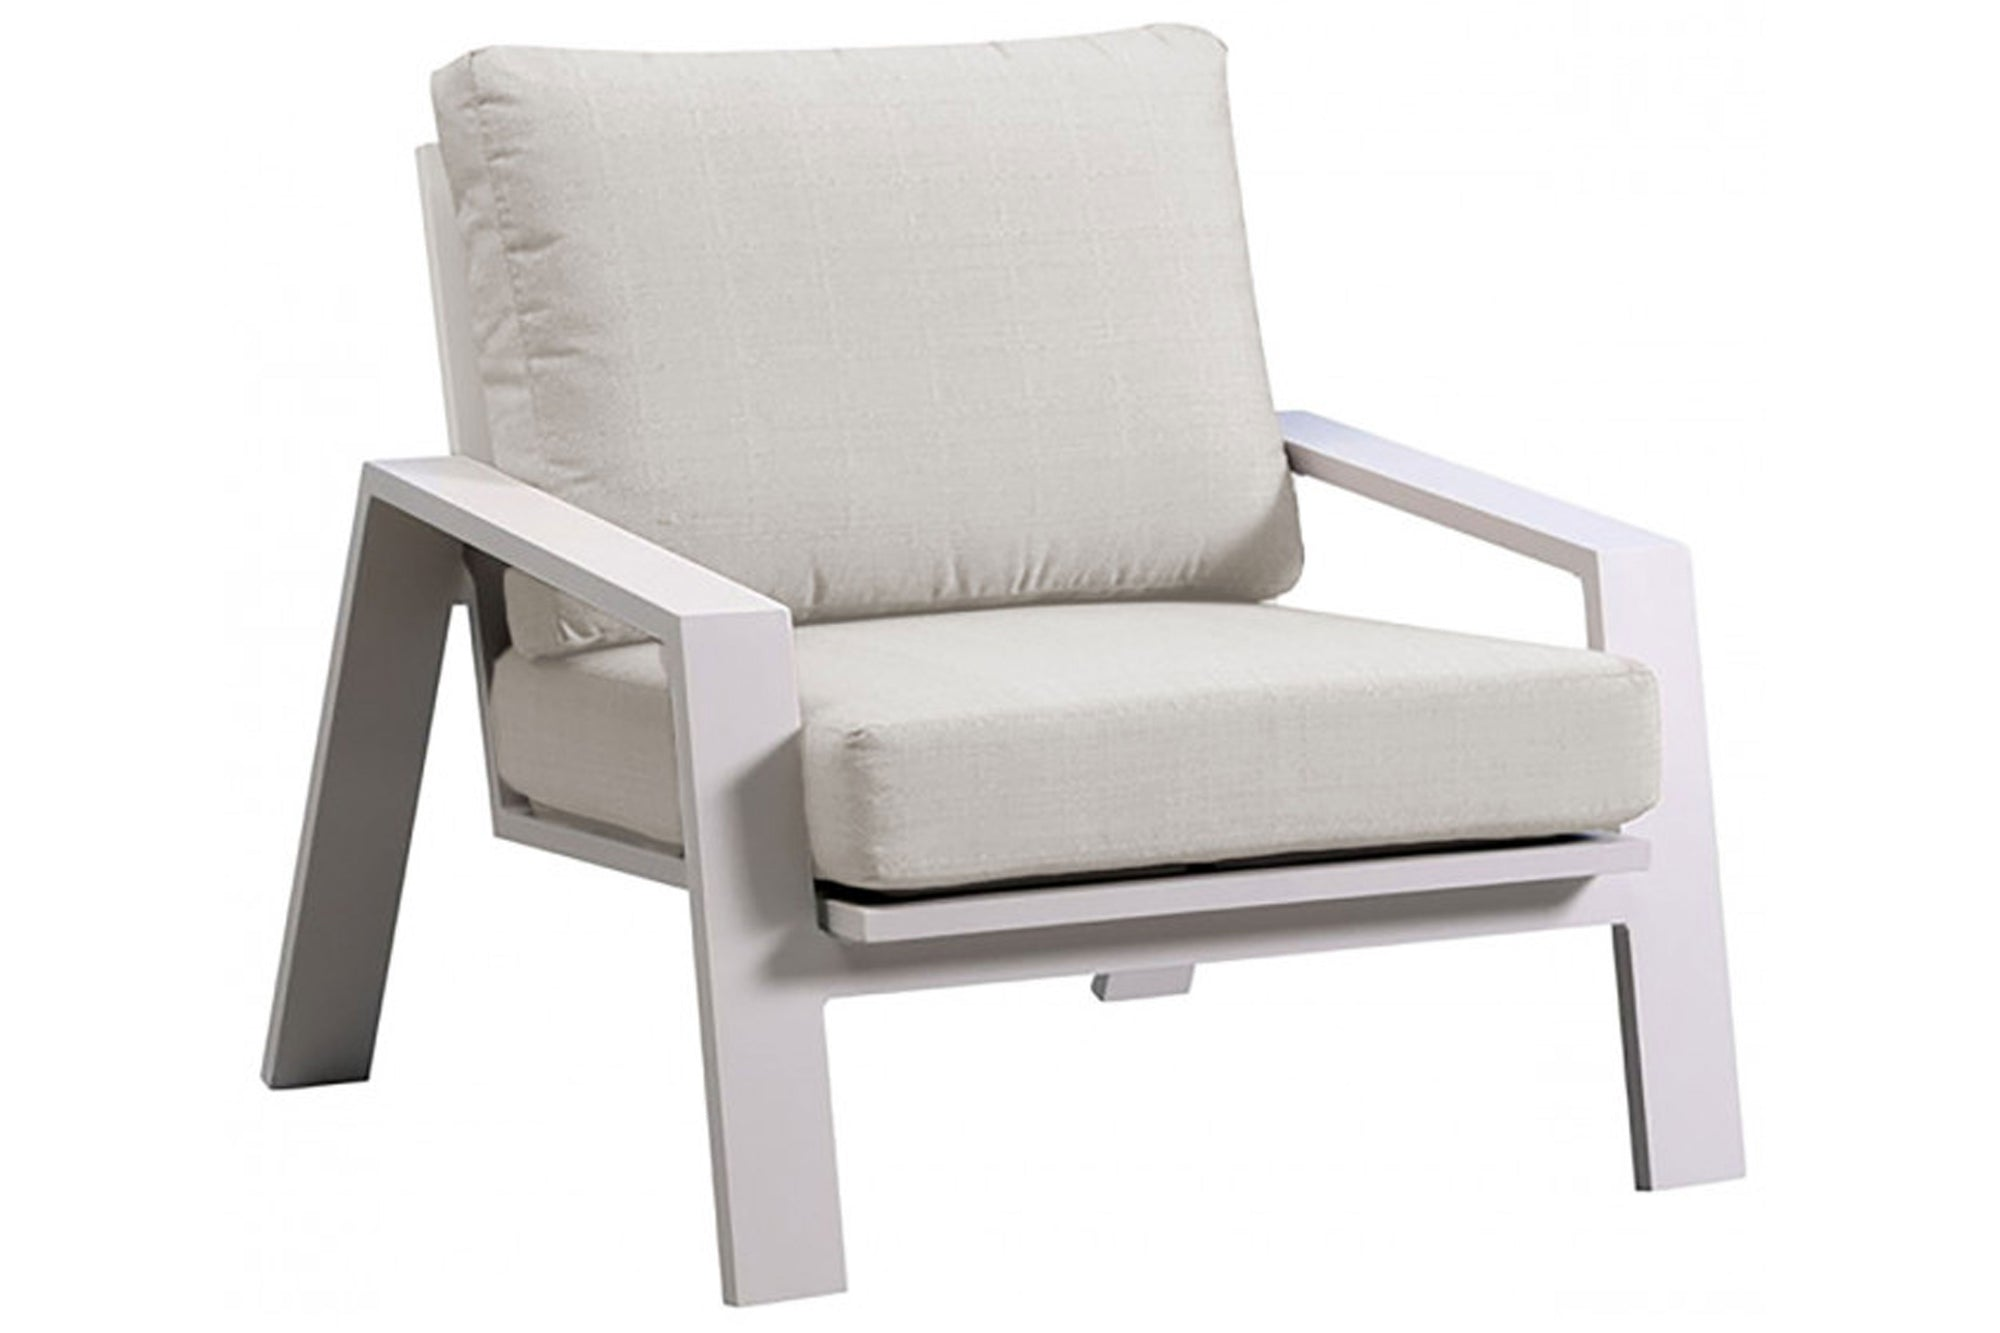 Mykonos Lounge Chair w/off-white cushion